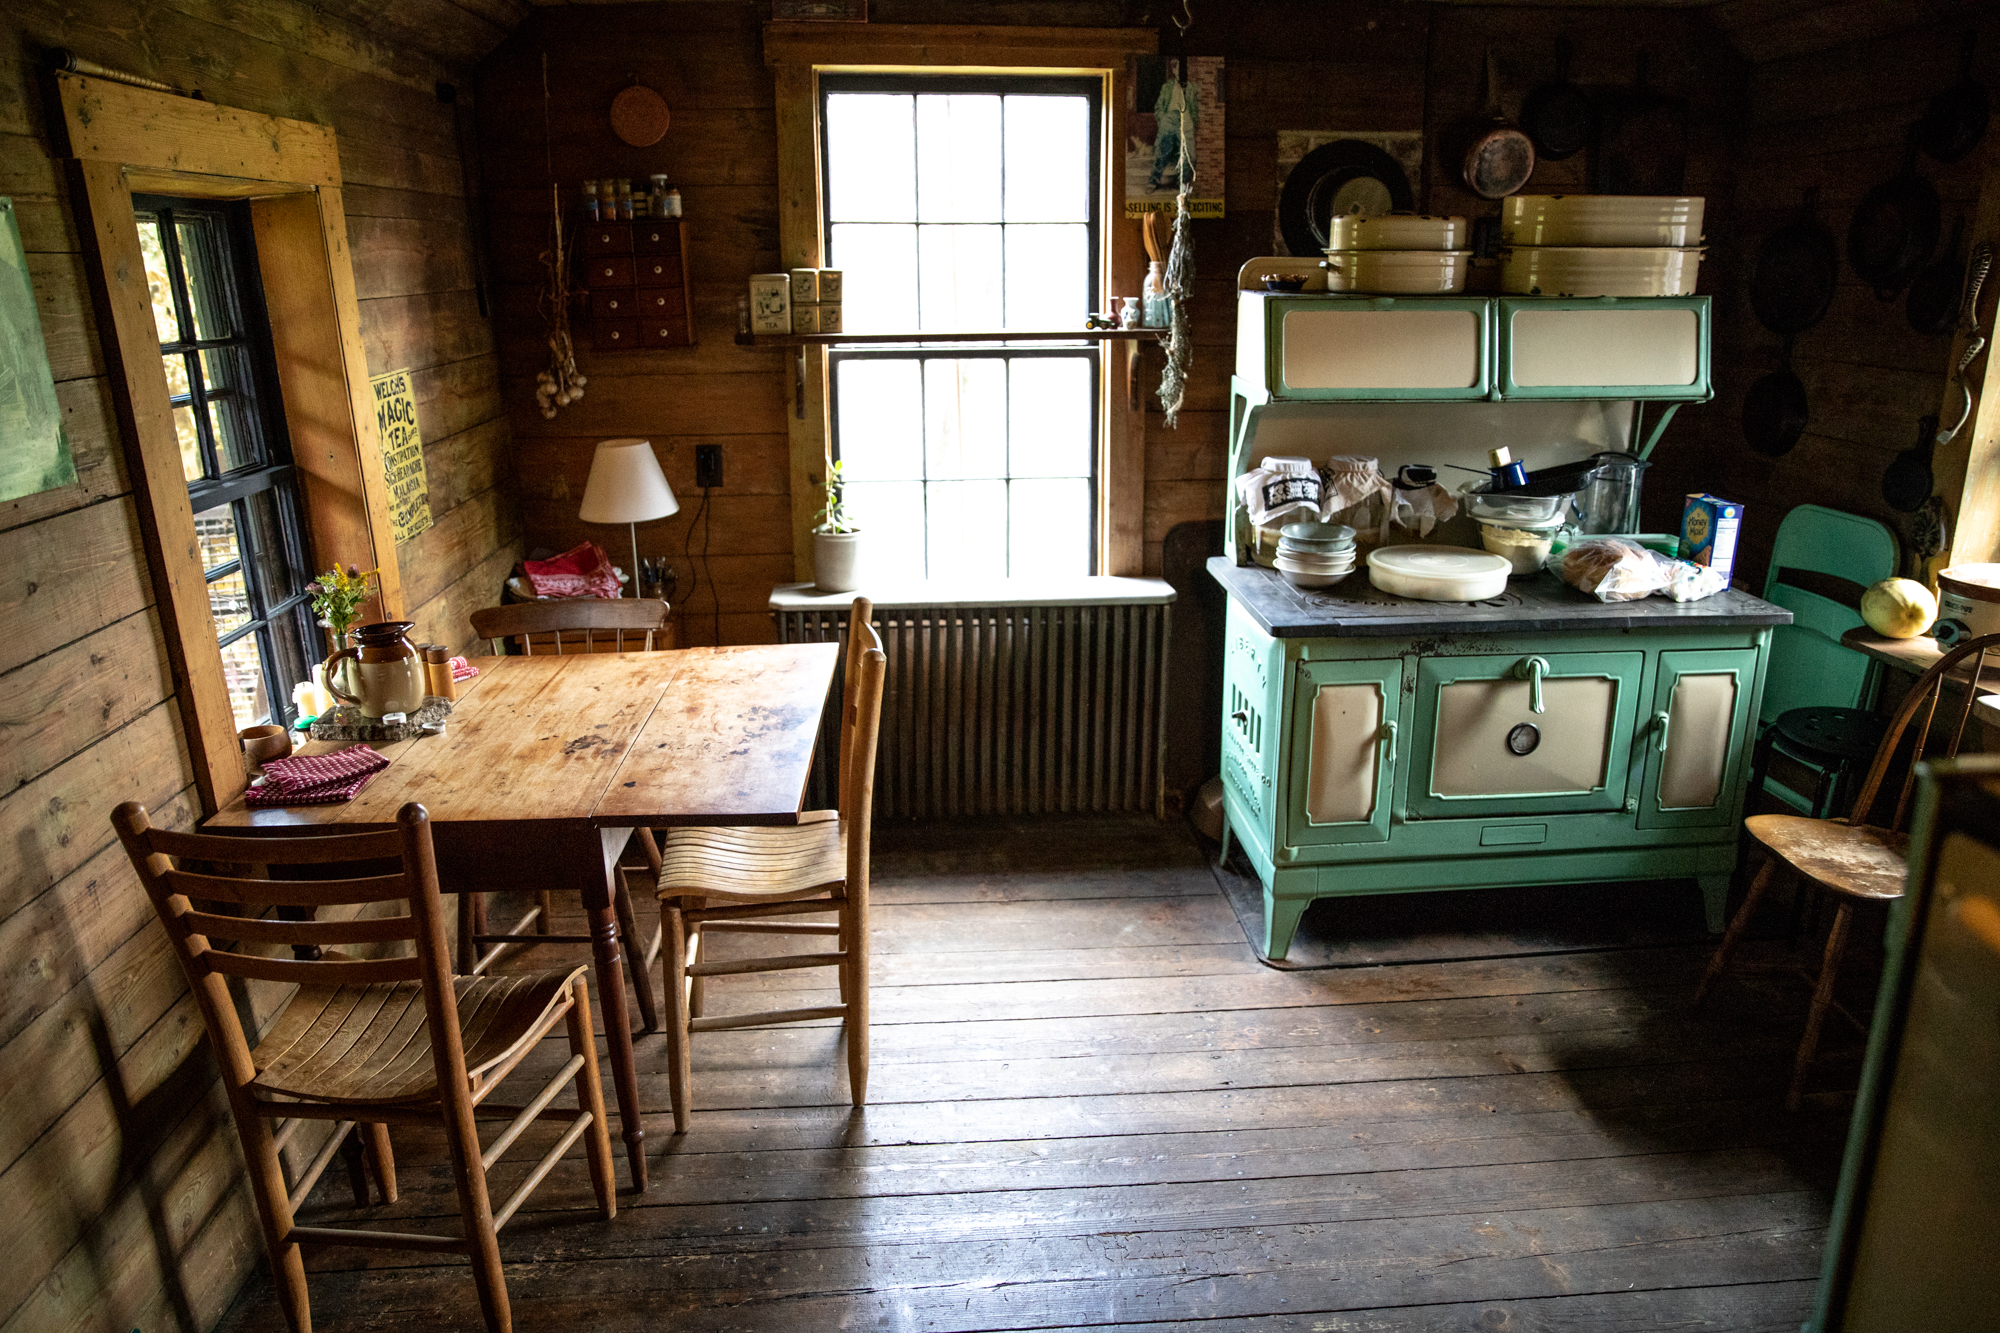 Gretchen and Ian's rustic Vermont kitchen. Their house was built in the 1700's and sits on 10 acres.